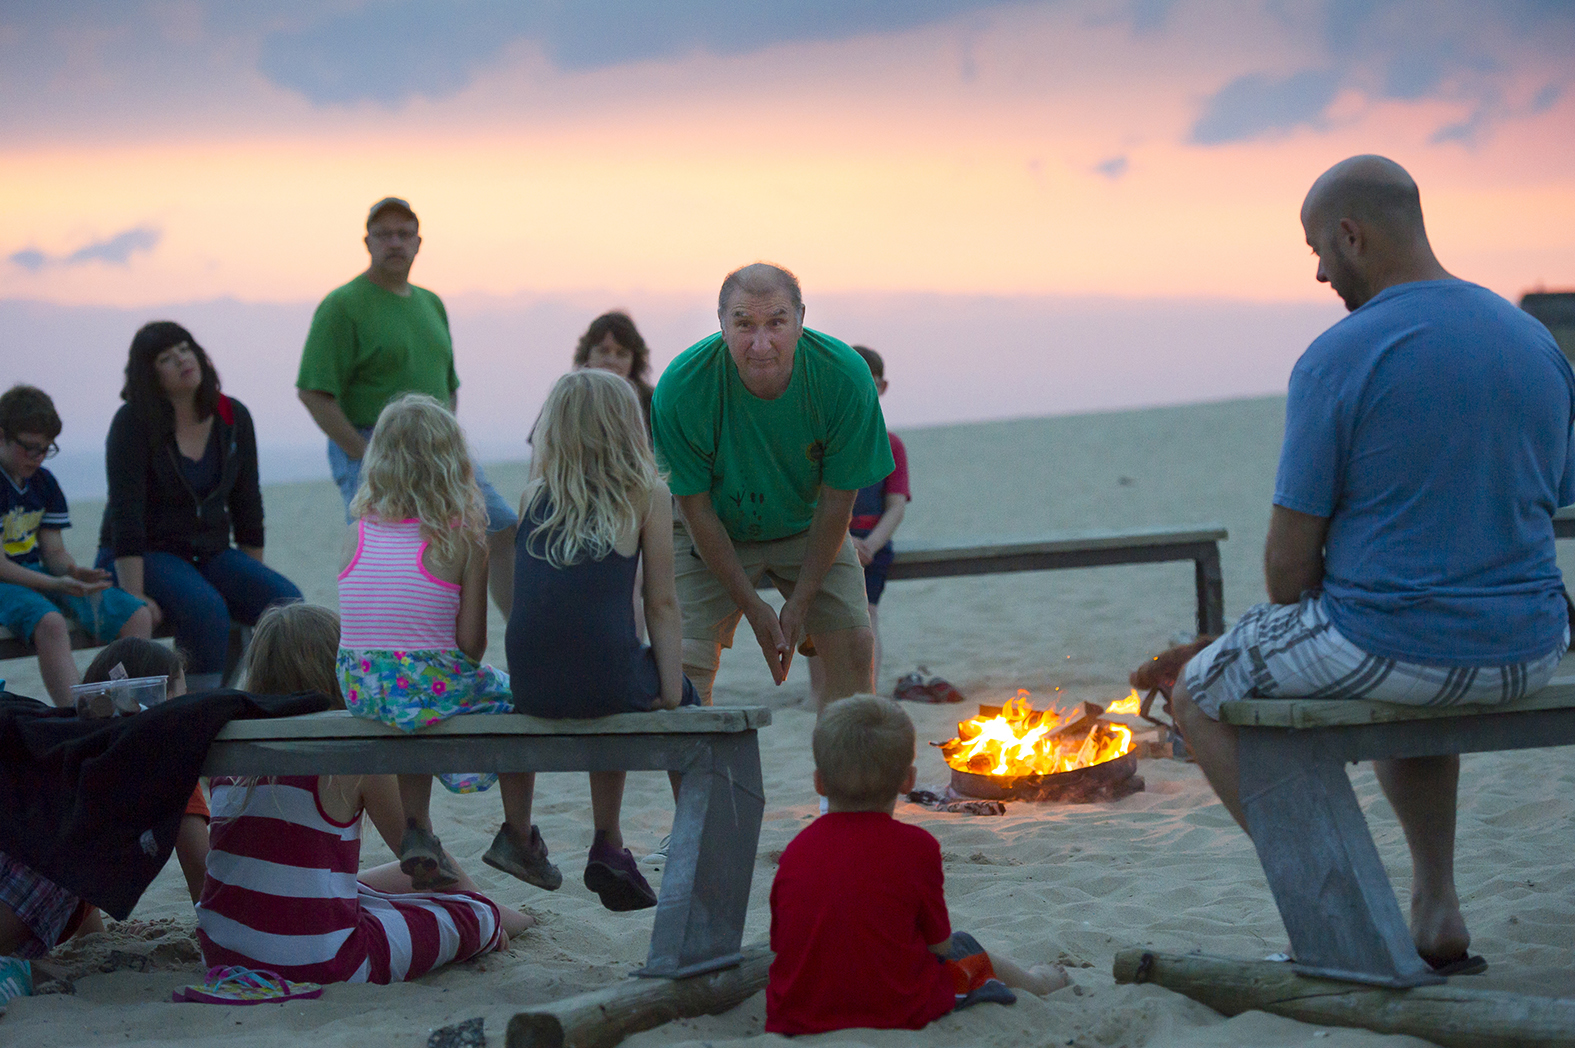 Mike Latus, State Park Explorer Program guide at Warren Dunes State Park, talks with some young park visitors.